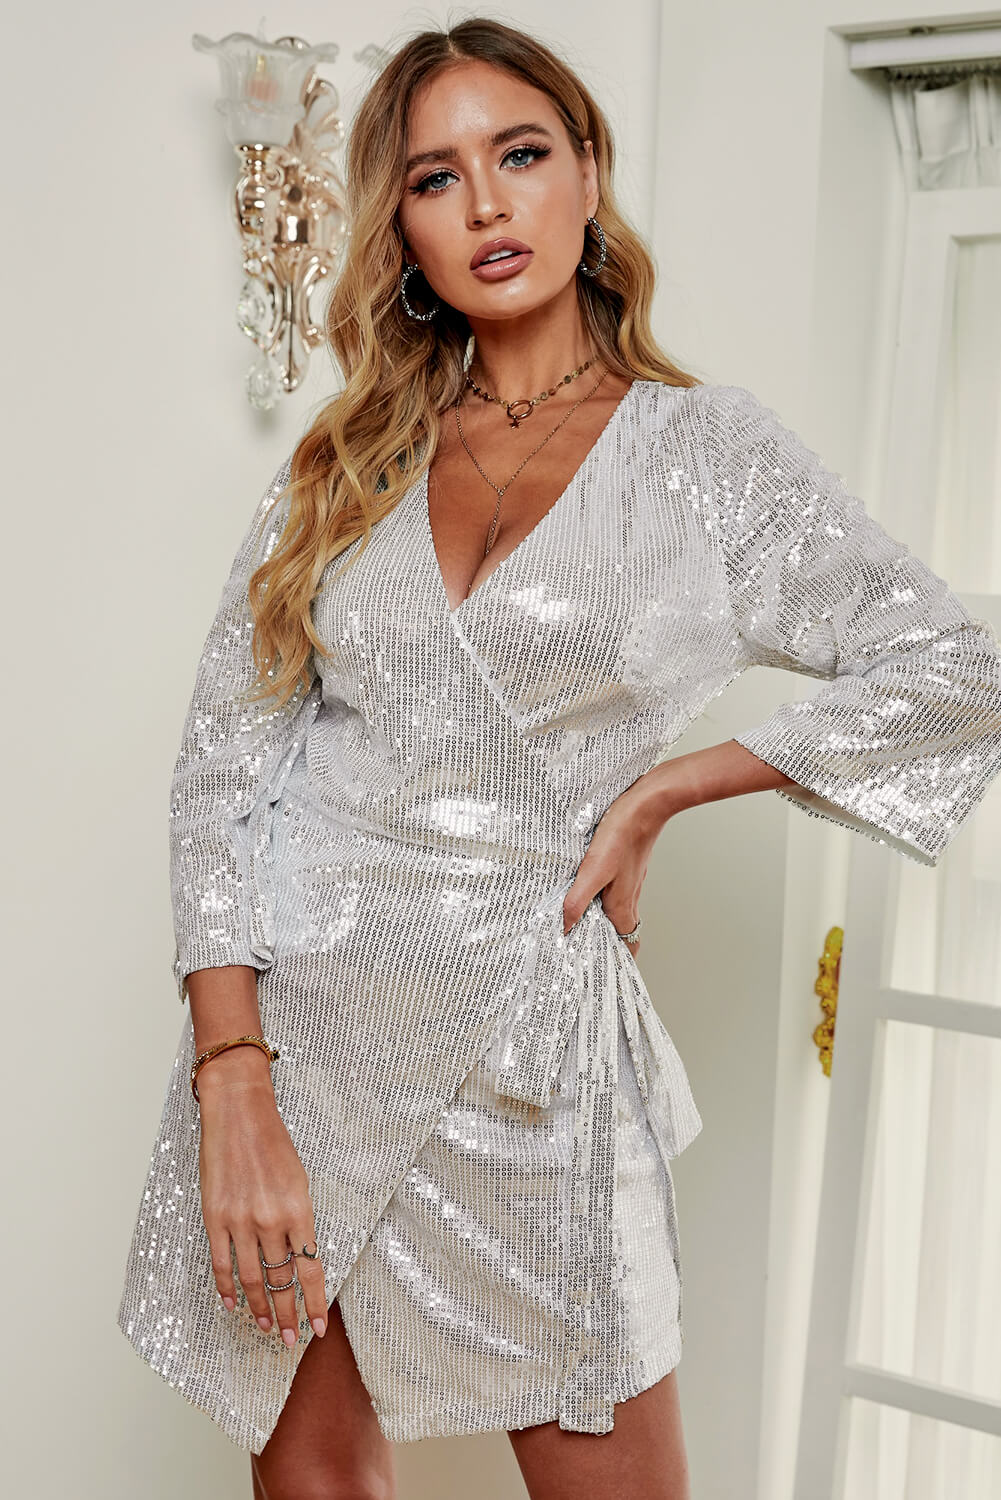 Silver Sequin Wrap Dress with Sash - JT's Designer Fashion